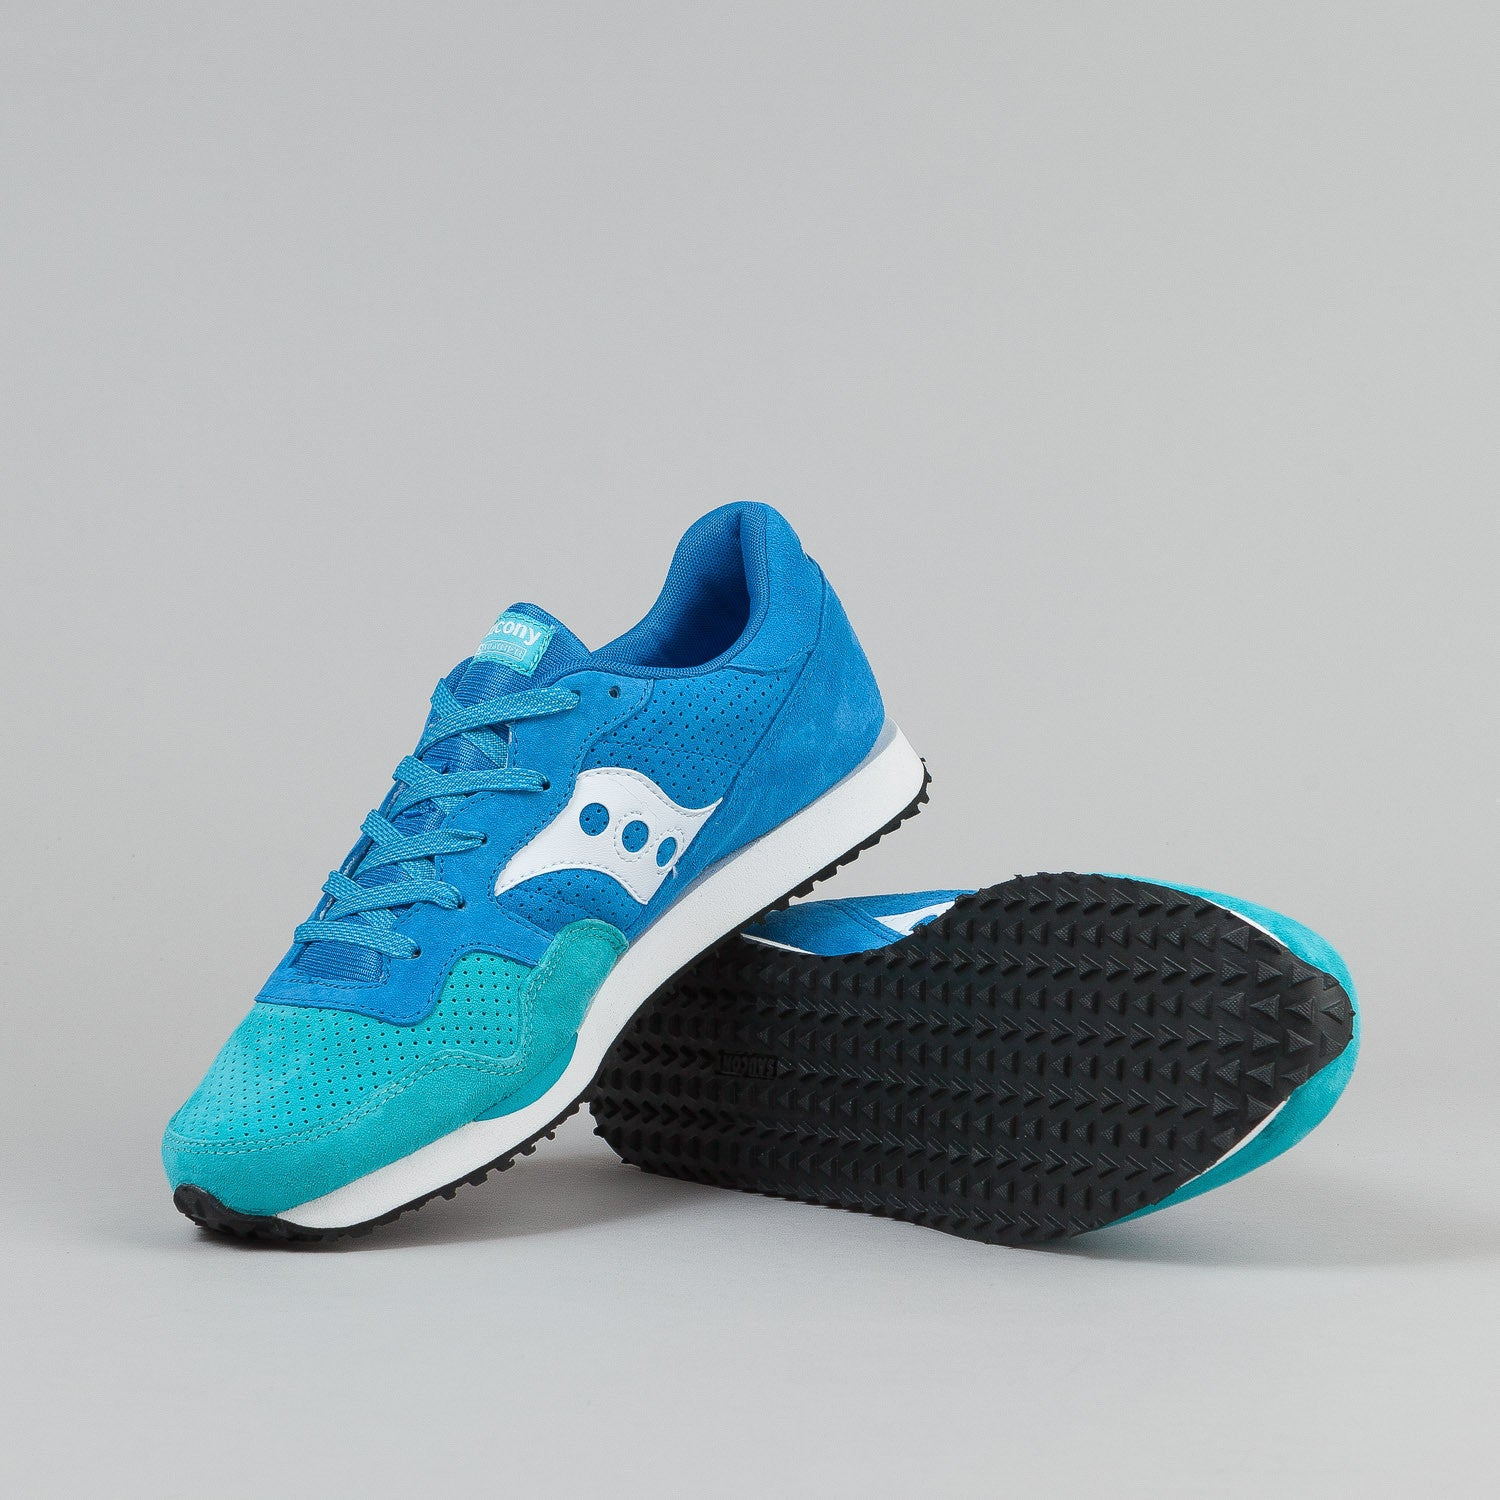 Saucony DXN Trainer Shoes - 'Bermuda Pack'